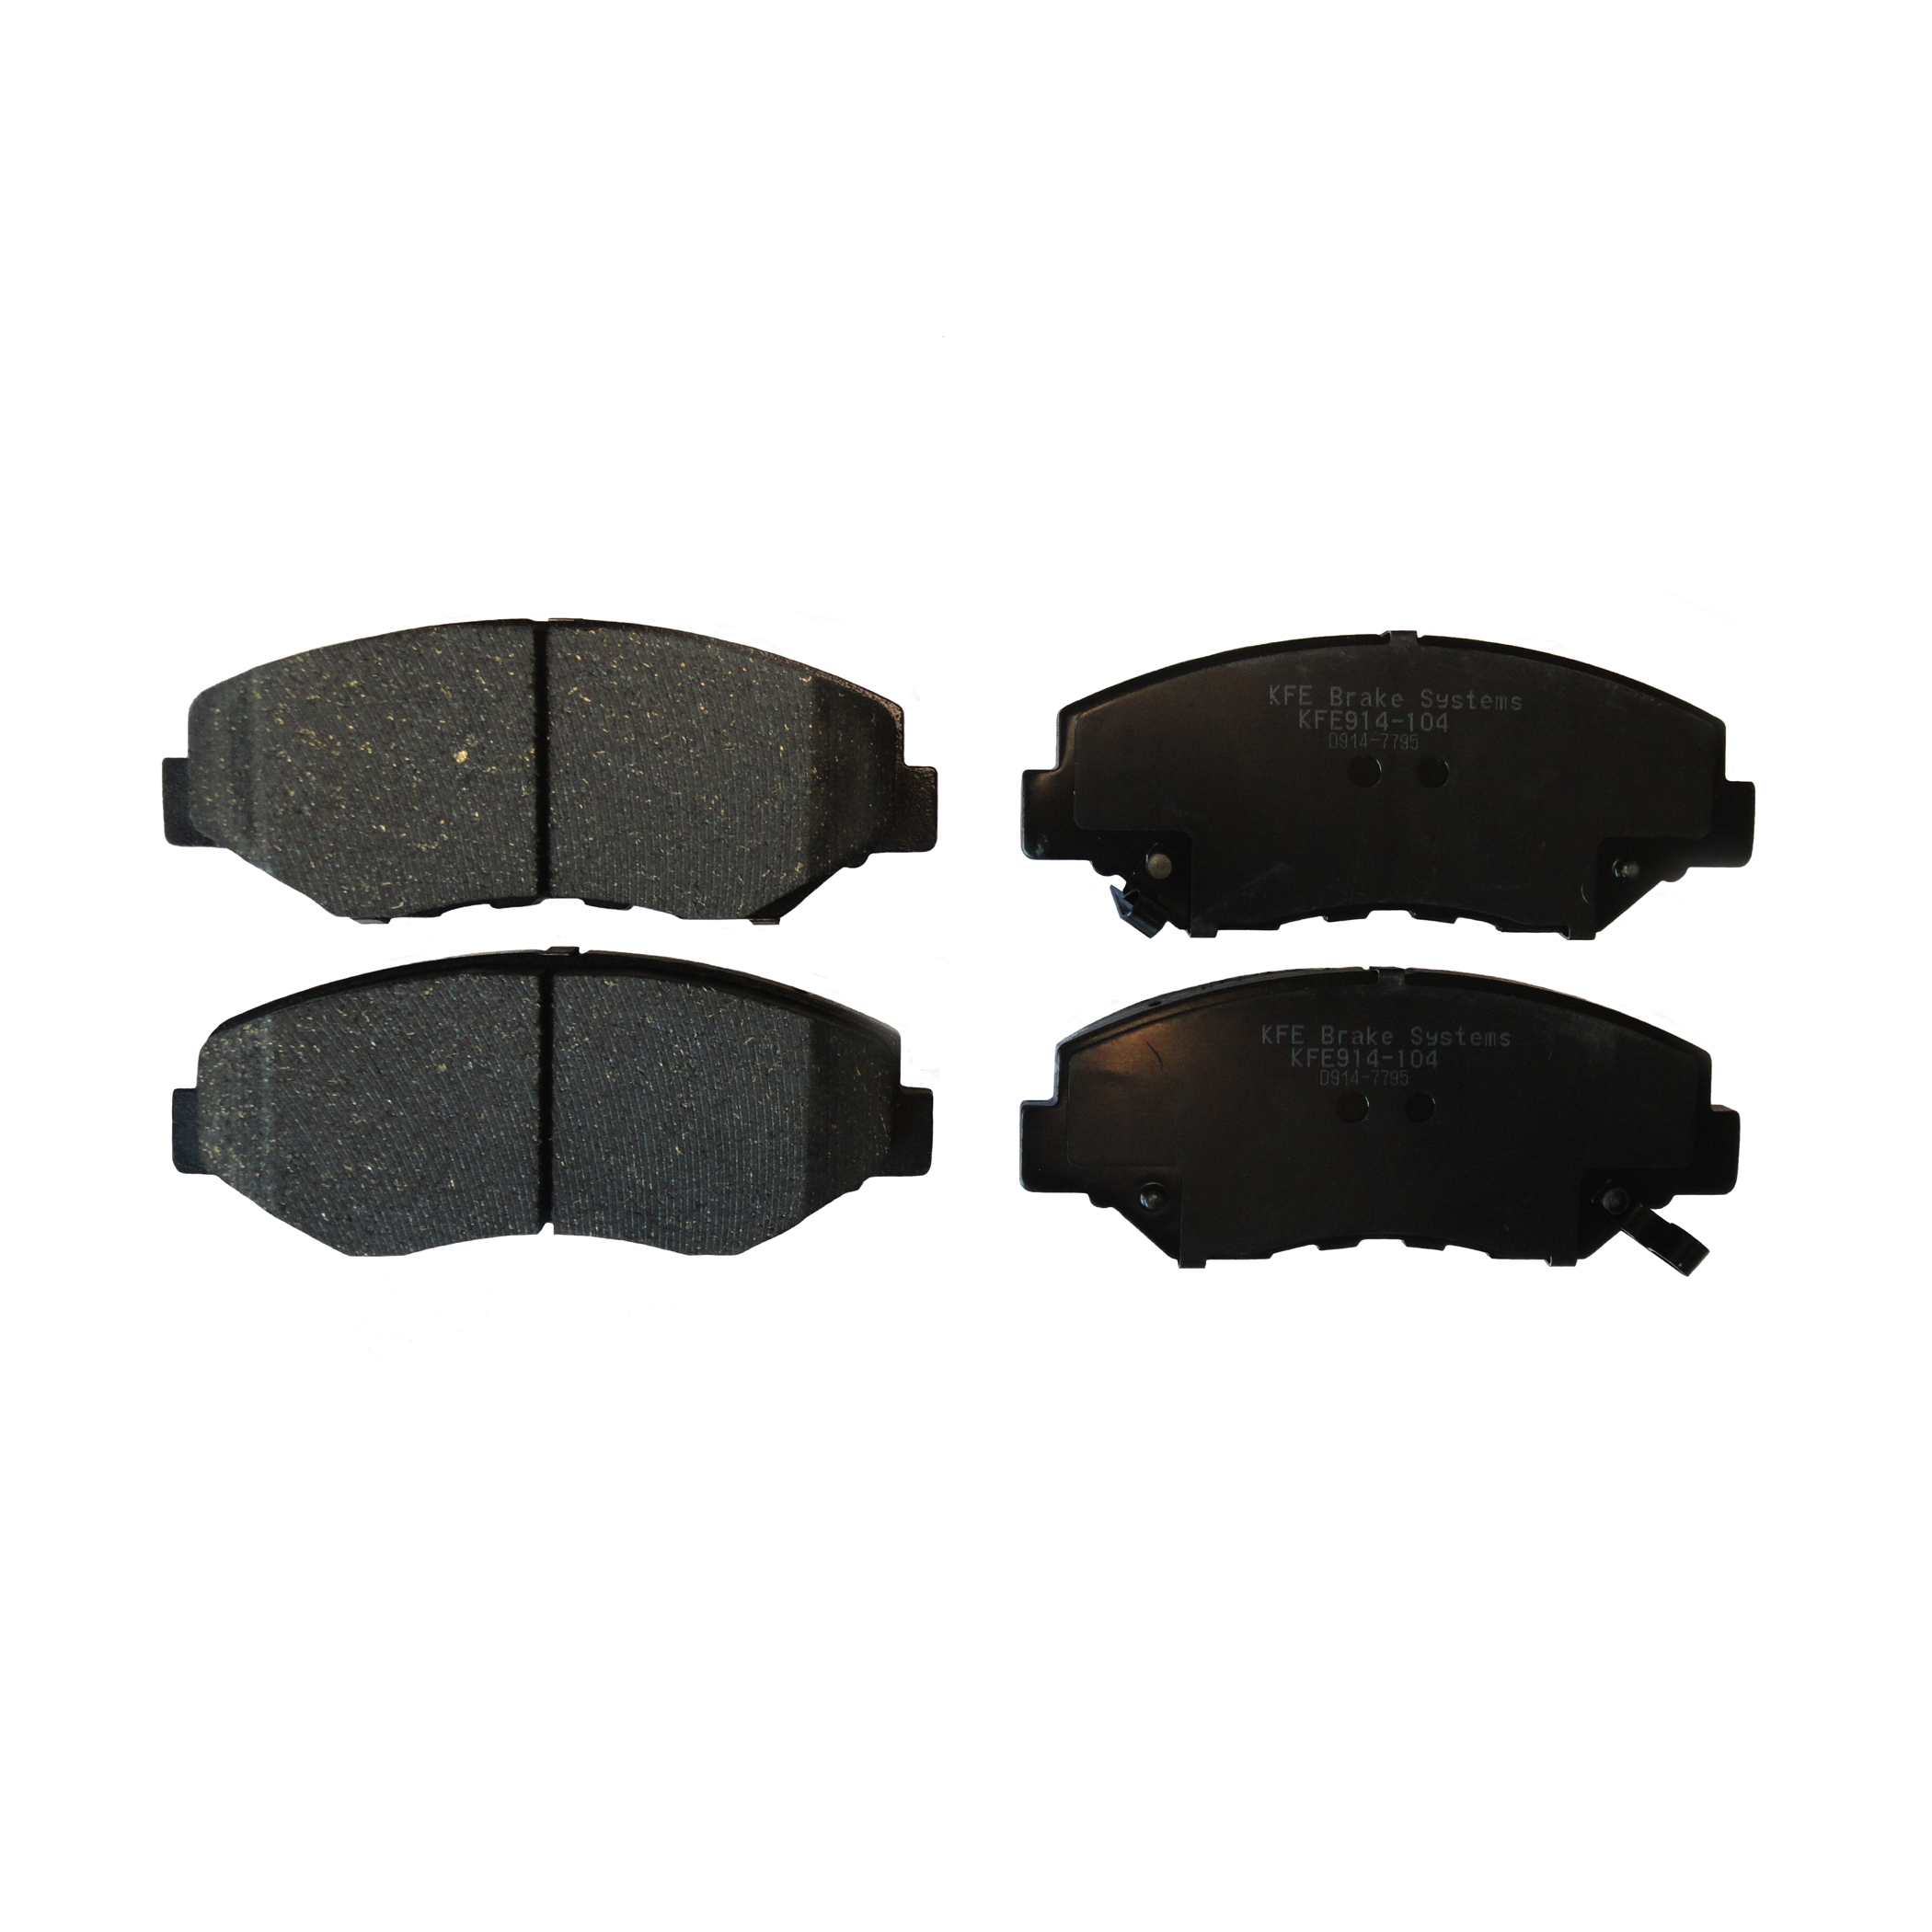 KFE914-104 Ultra Quiet Advanced Brake Pad